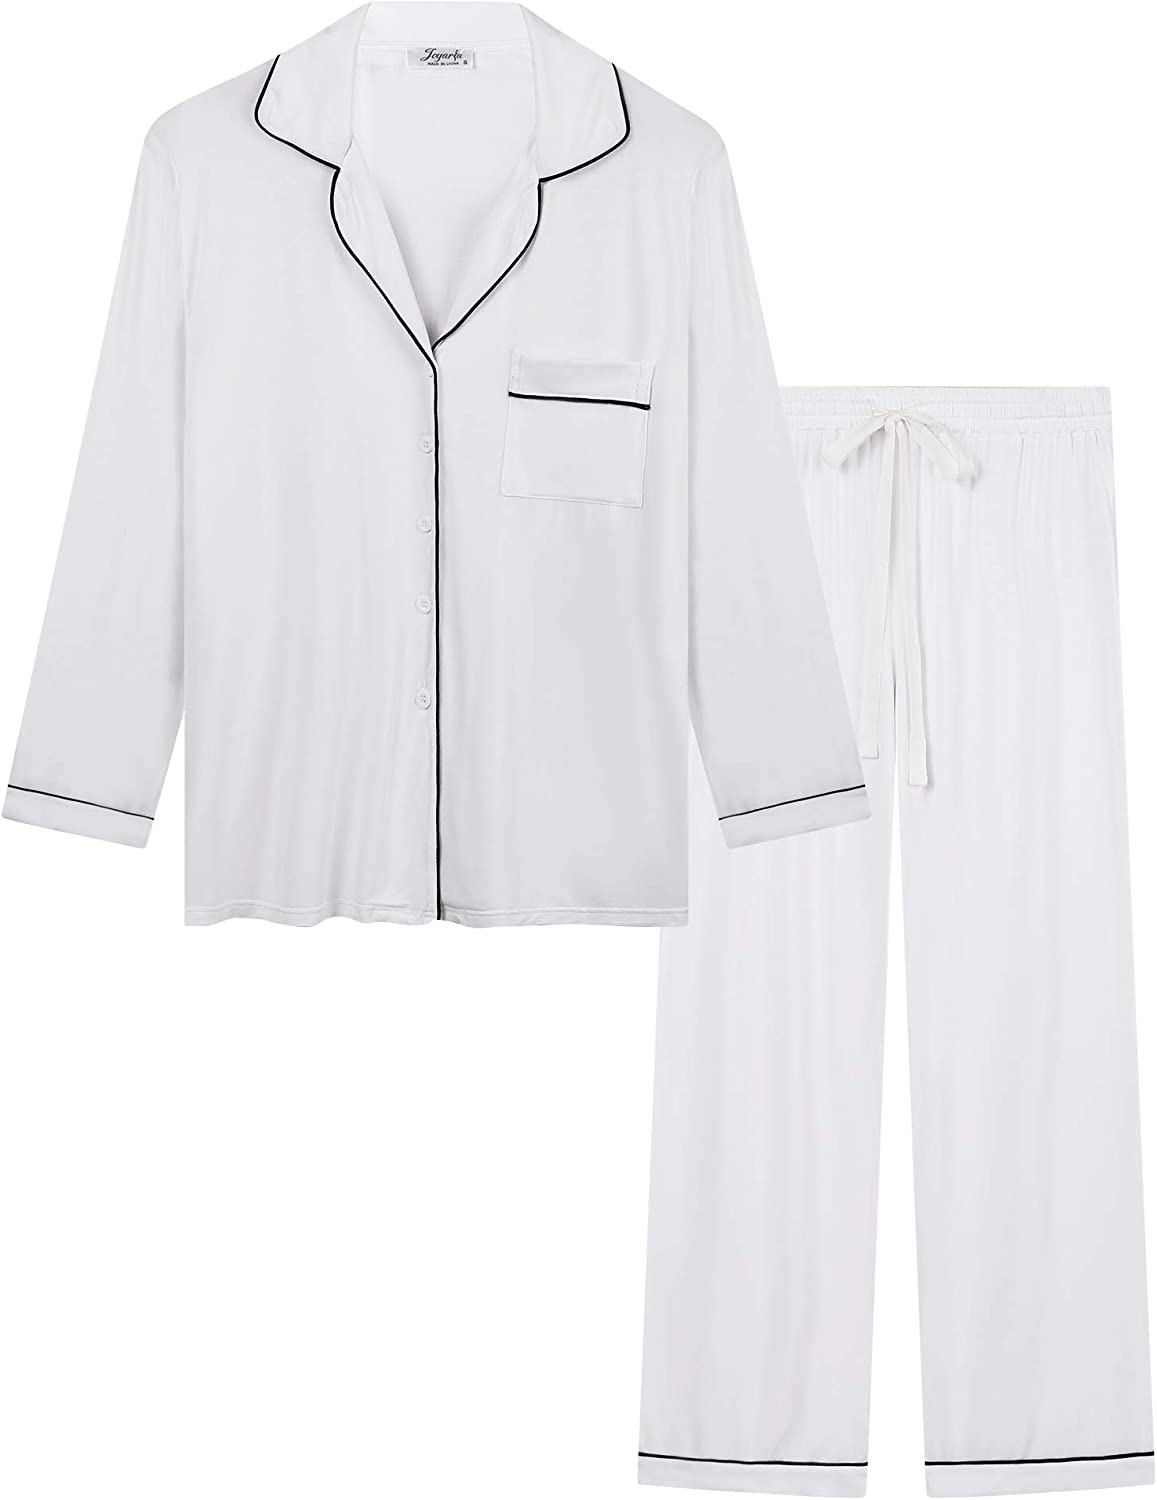 Women's Ultra Soft Pajama Pj Sets Cash special price - Button Down Sleeve Directly managed store Long